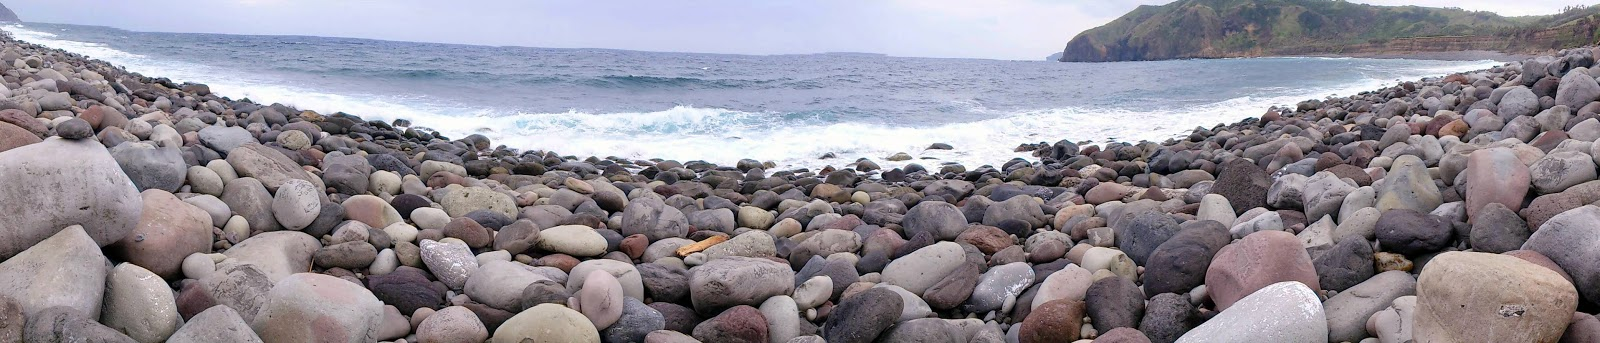 Valugan Boulder Beach, North Batan, Batanes